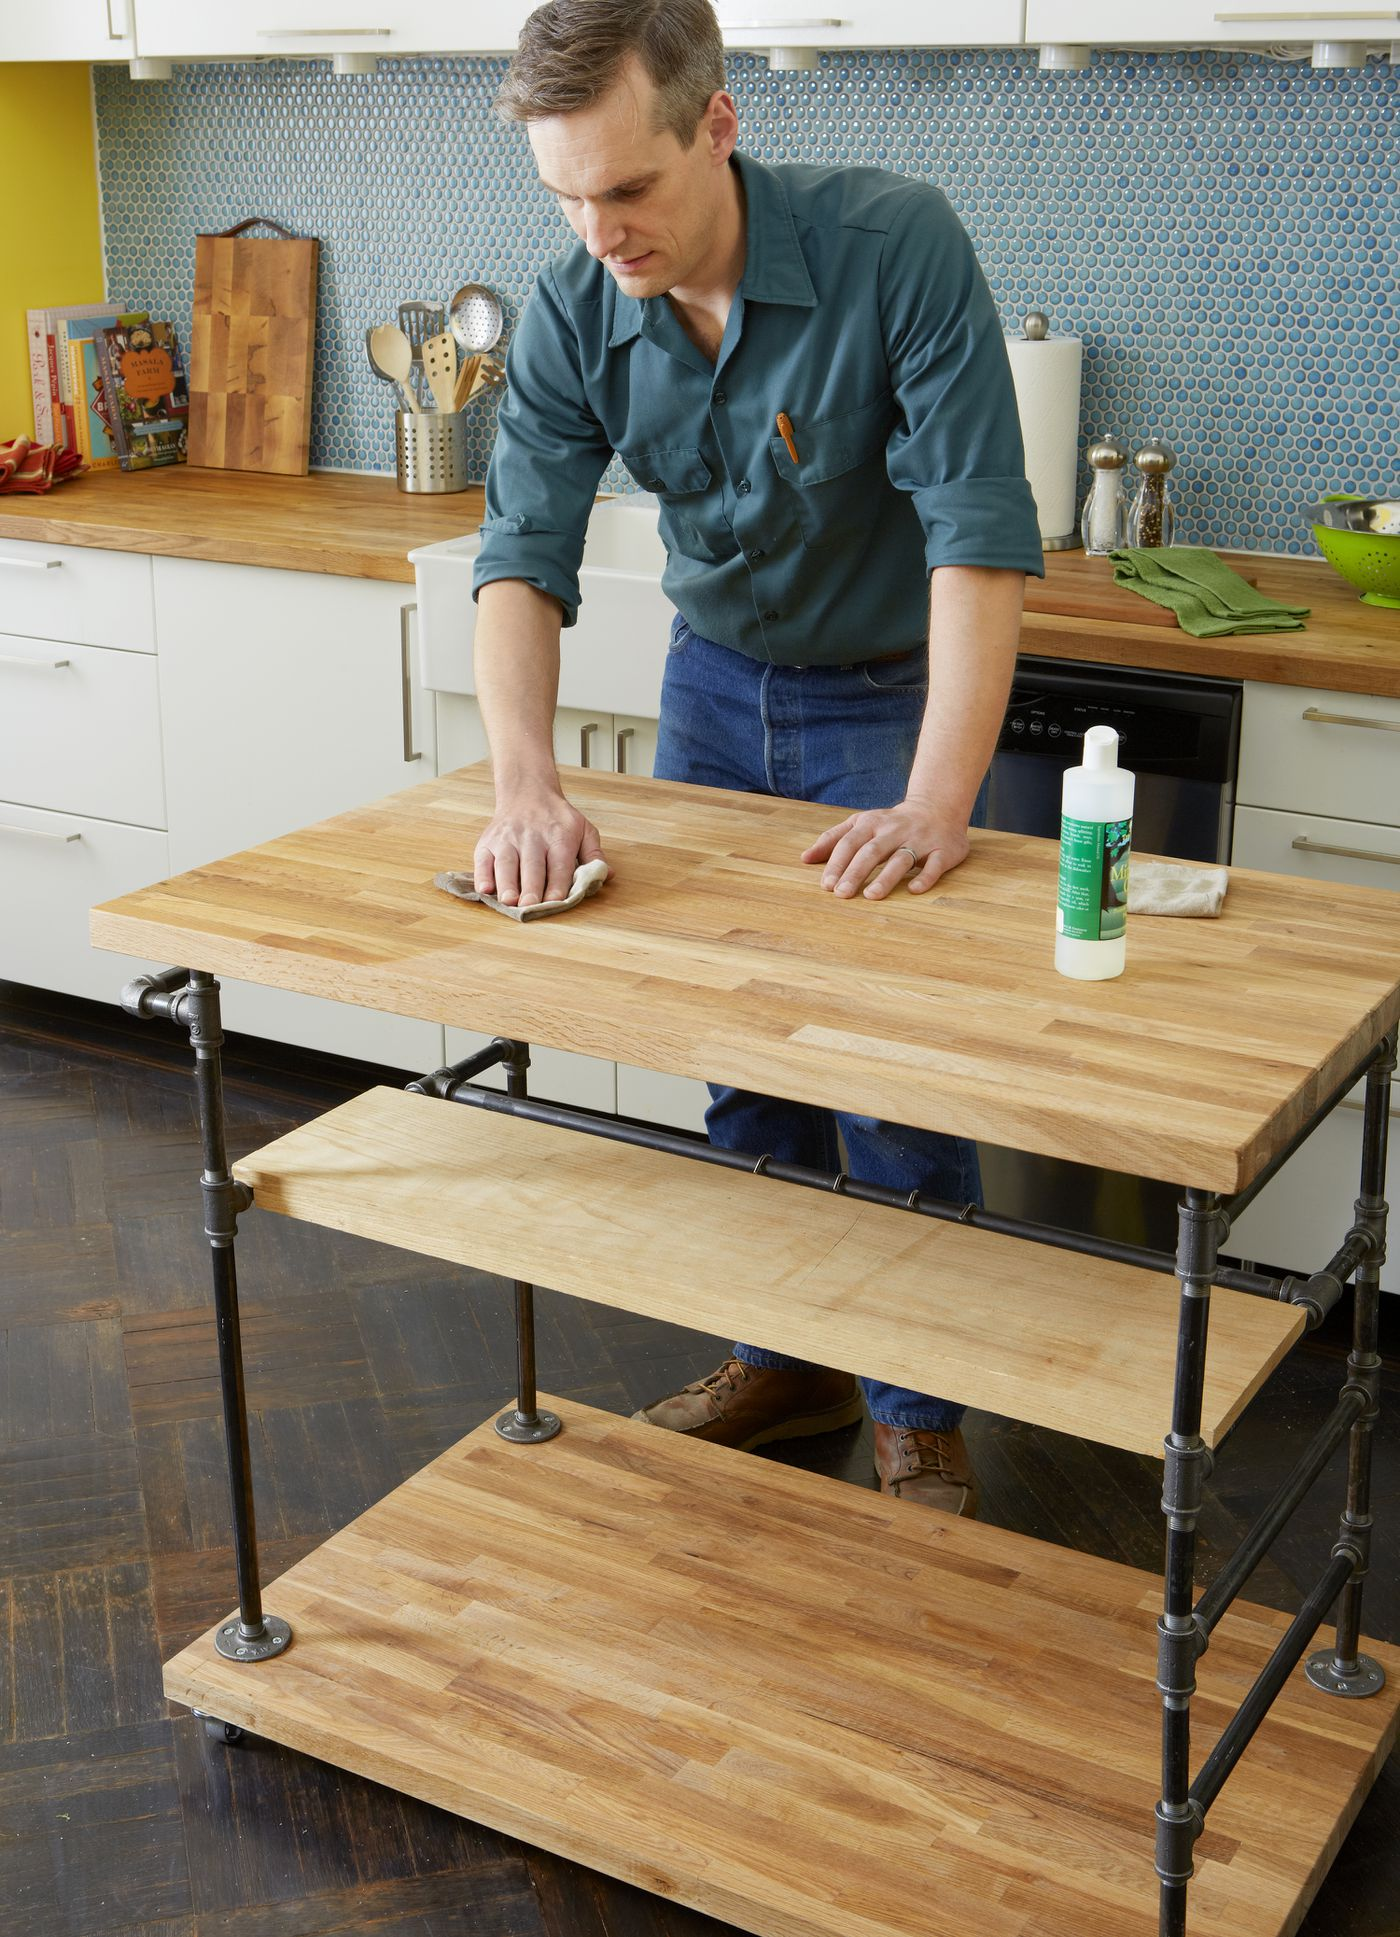 How To Build A Butcher Block Island This Old House